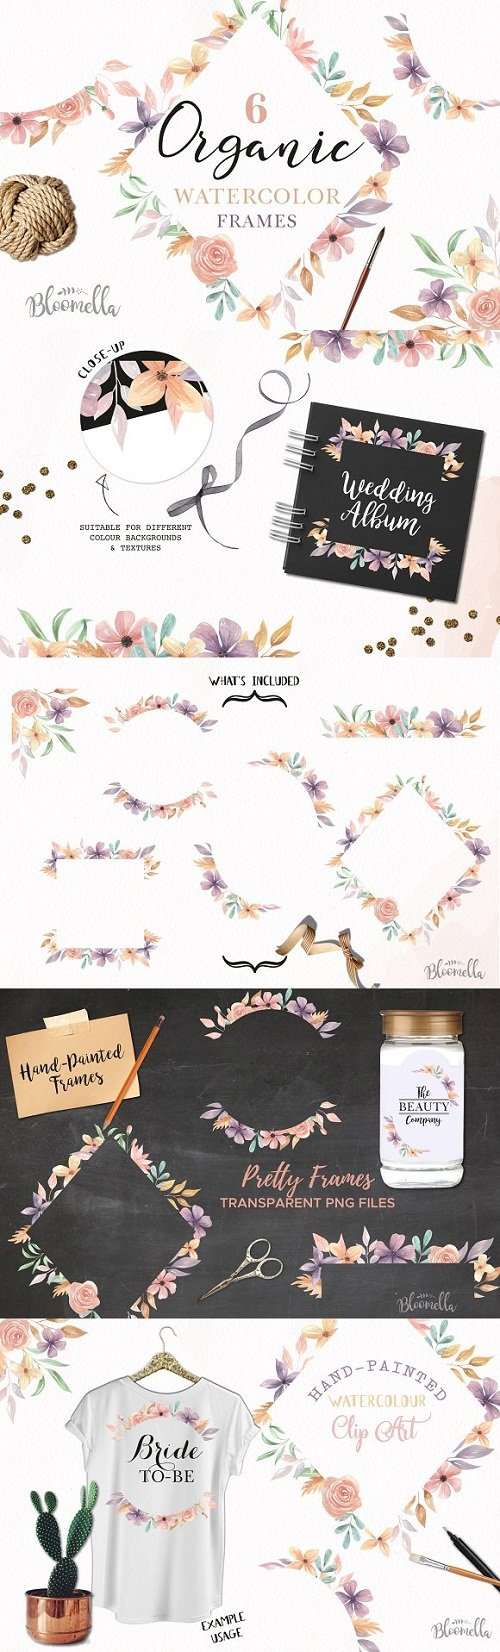 Floral Watercolour Flowers Frames - 3164885